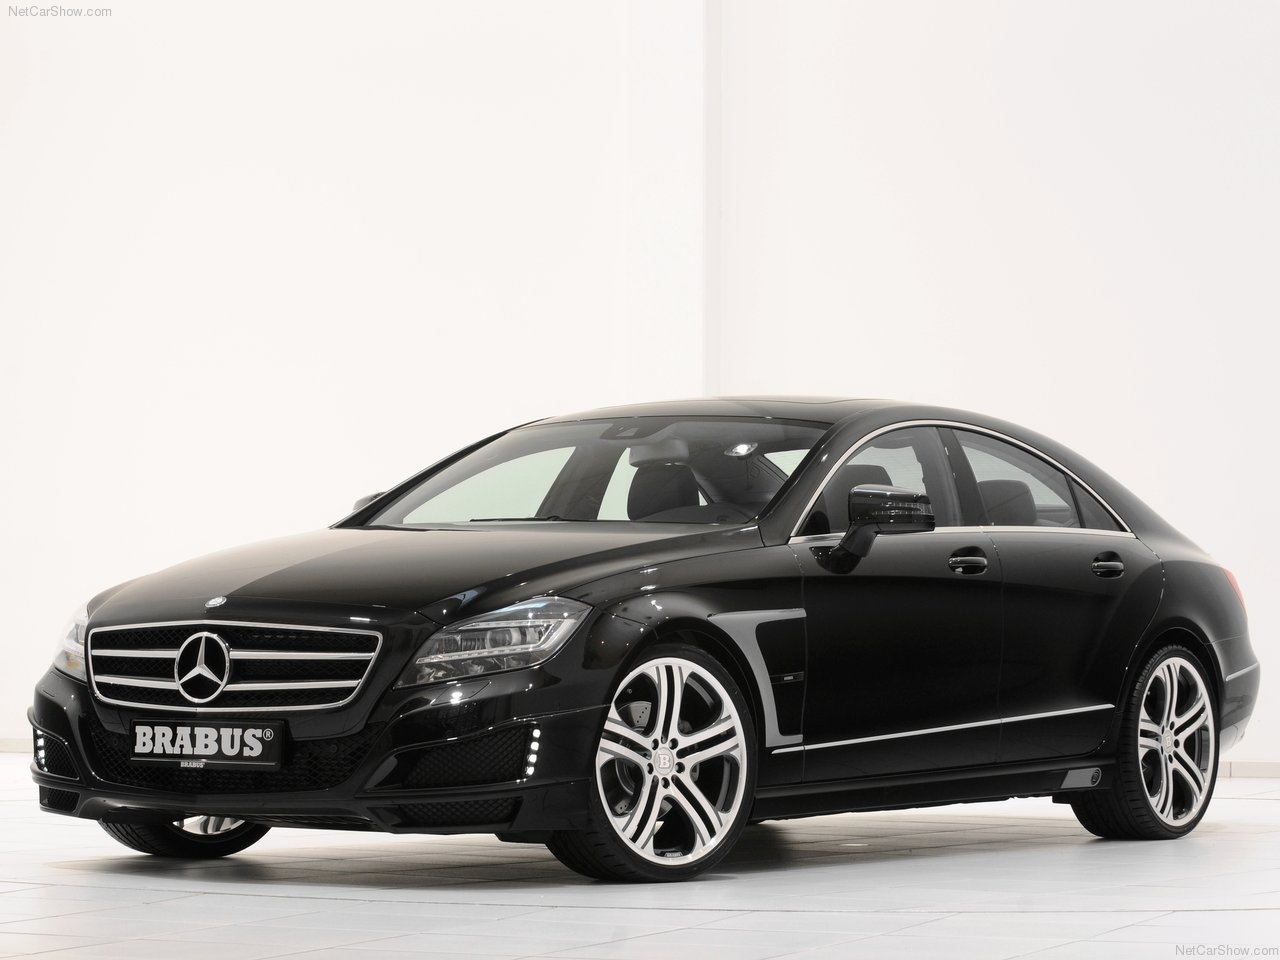 brabus mercedes benz cls 2012. Black Bedroom Furniture Sets. Home Design Ideas